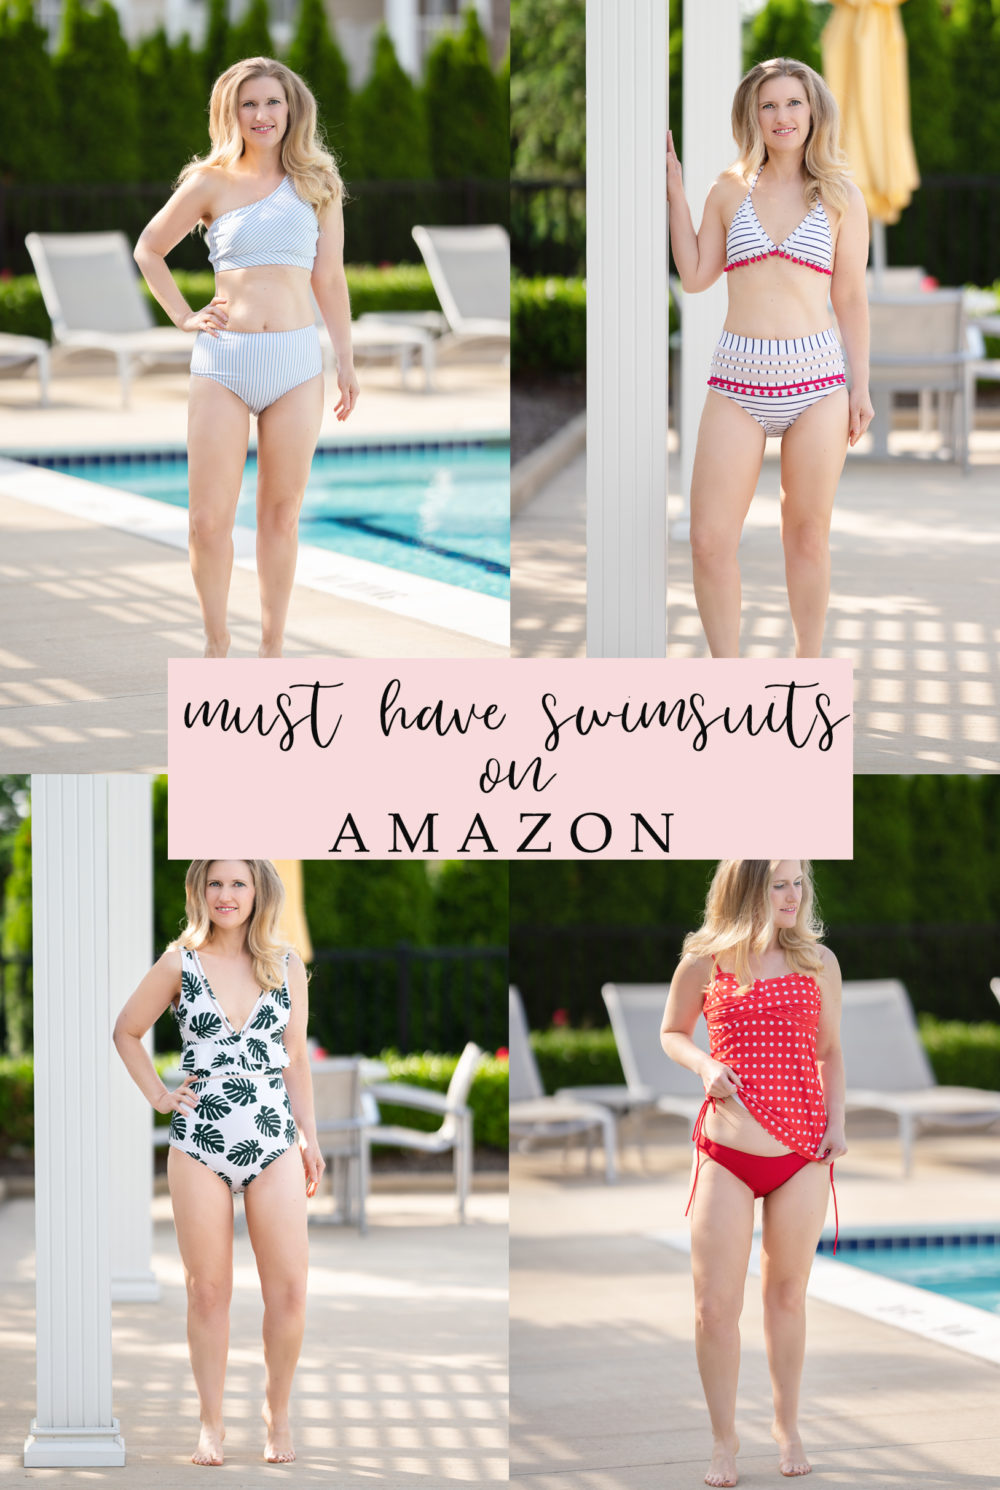 Petite Fashion Blog | Amazon Swimsuits | Amazon Bikinis | Women's Swimsuits | Affordable Swimsuits